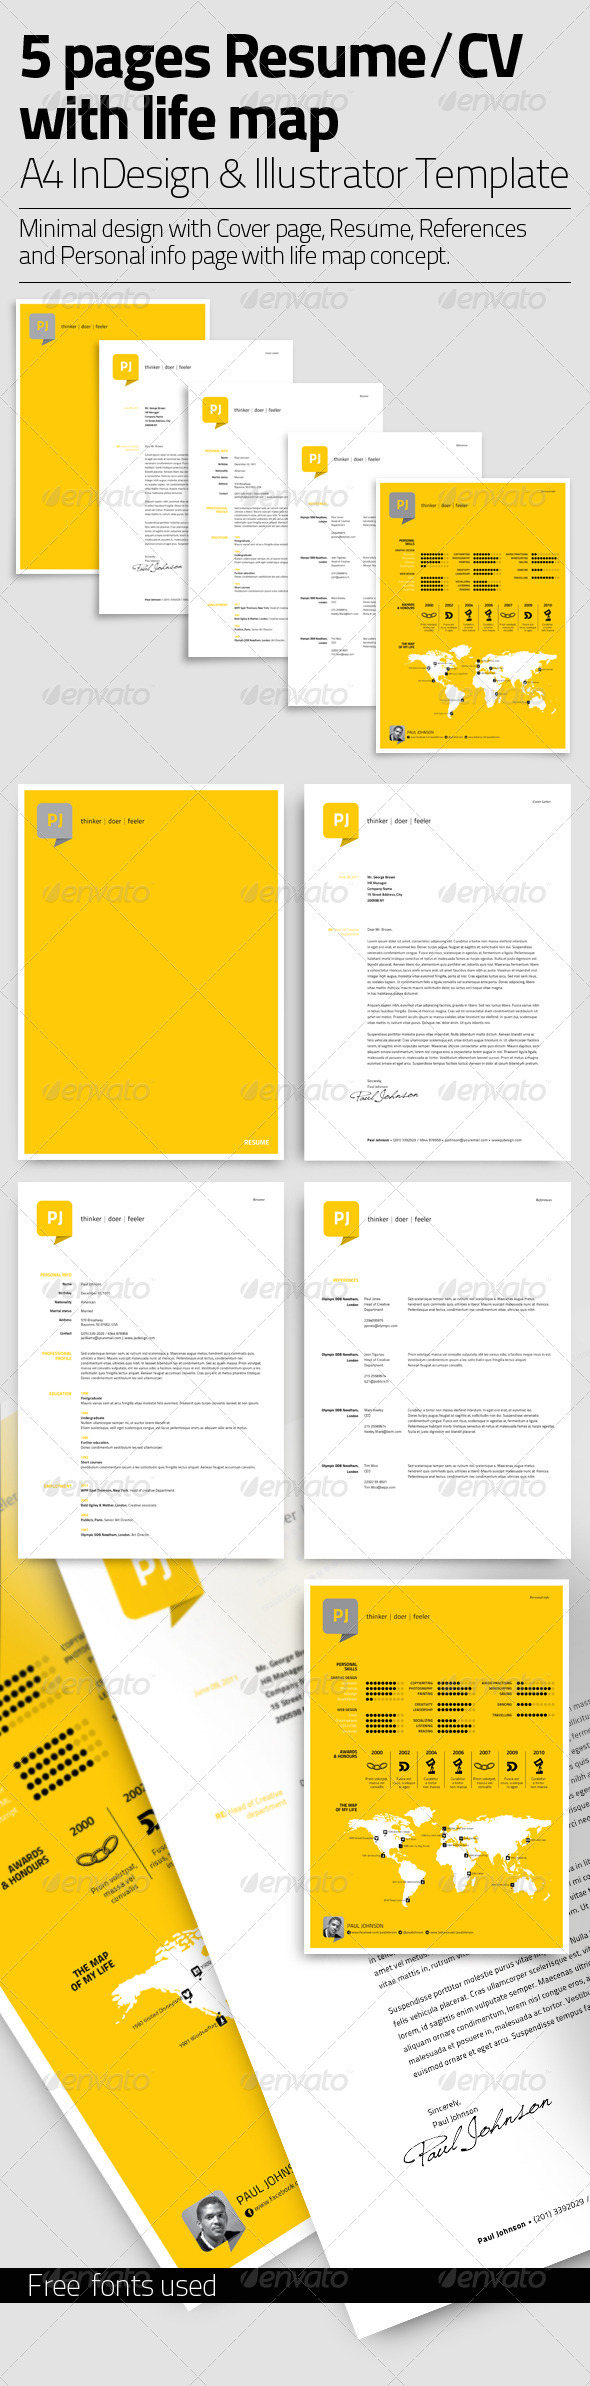 GraphicRiver Resume Template 5 Pages with Life Map 3422353